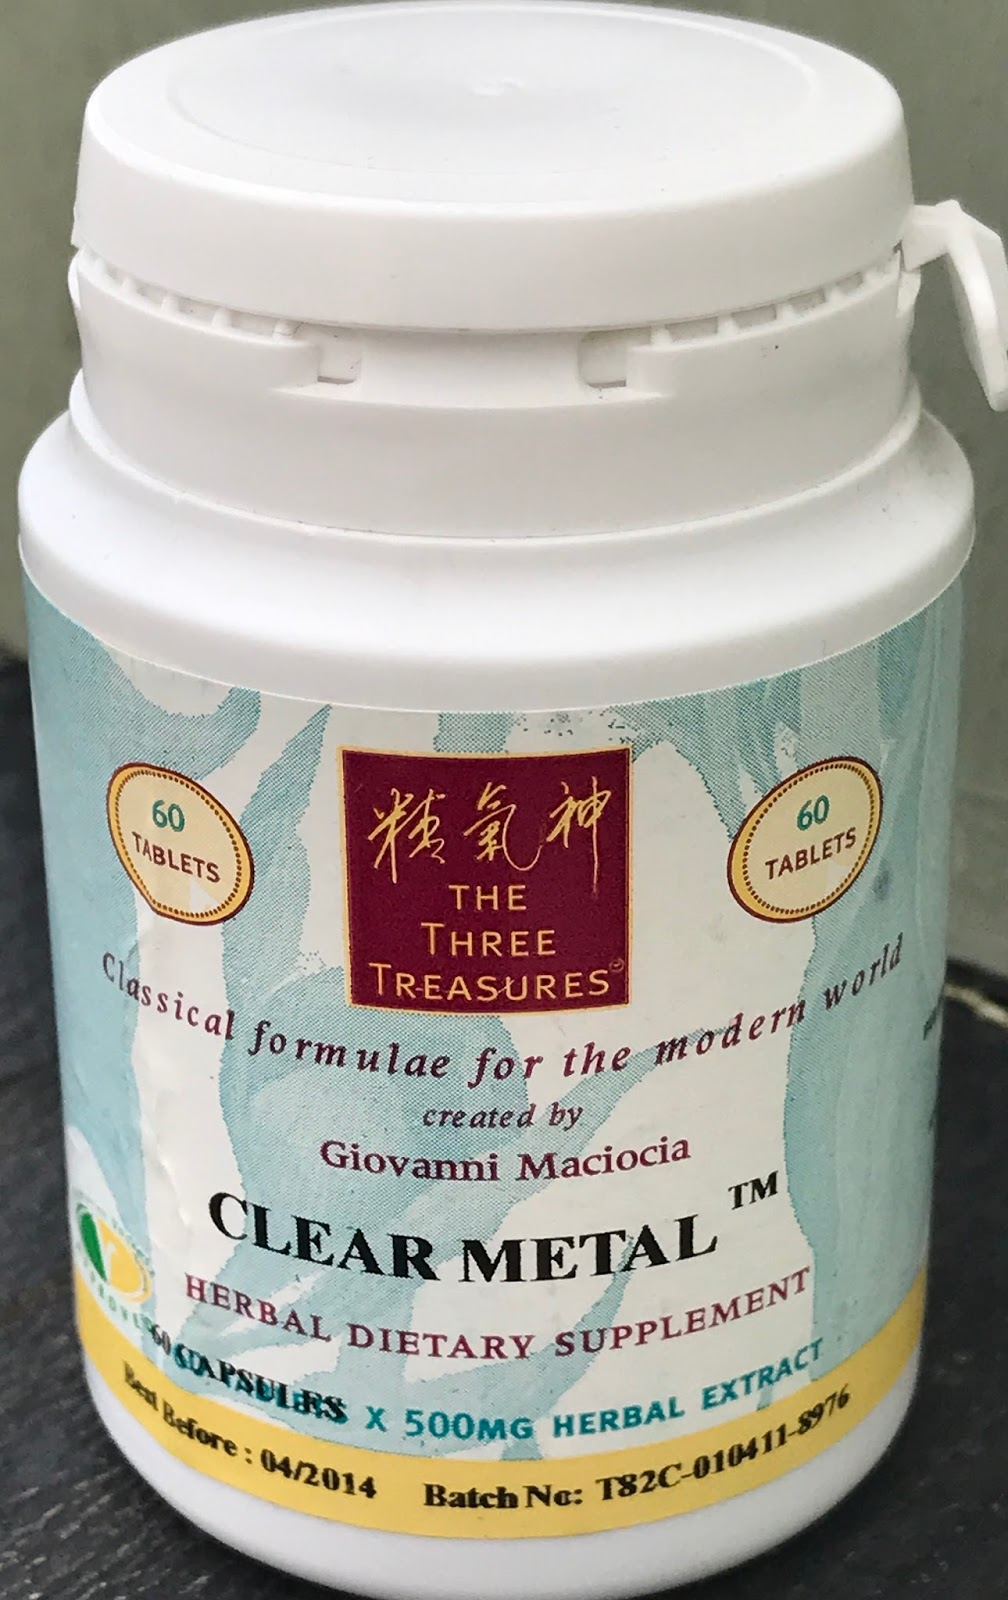 Clear Metal (Expires 12/19)